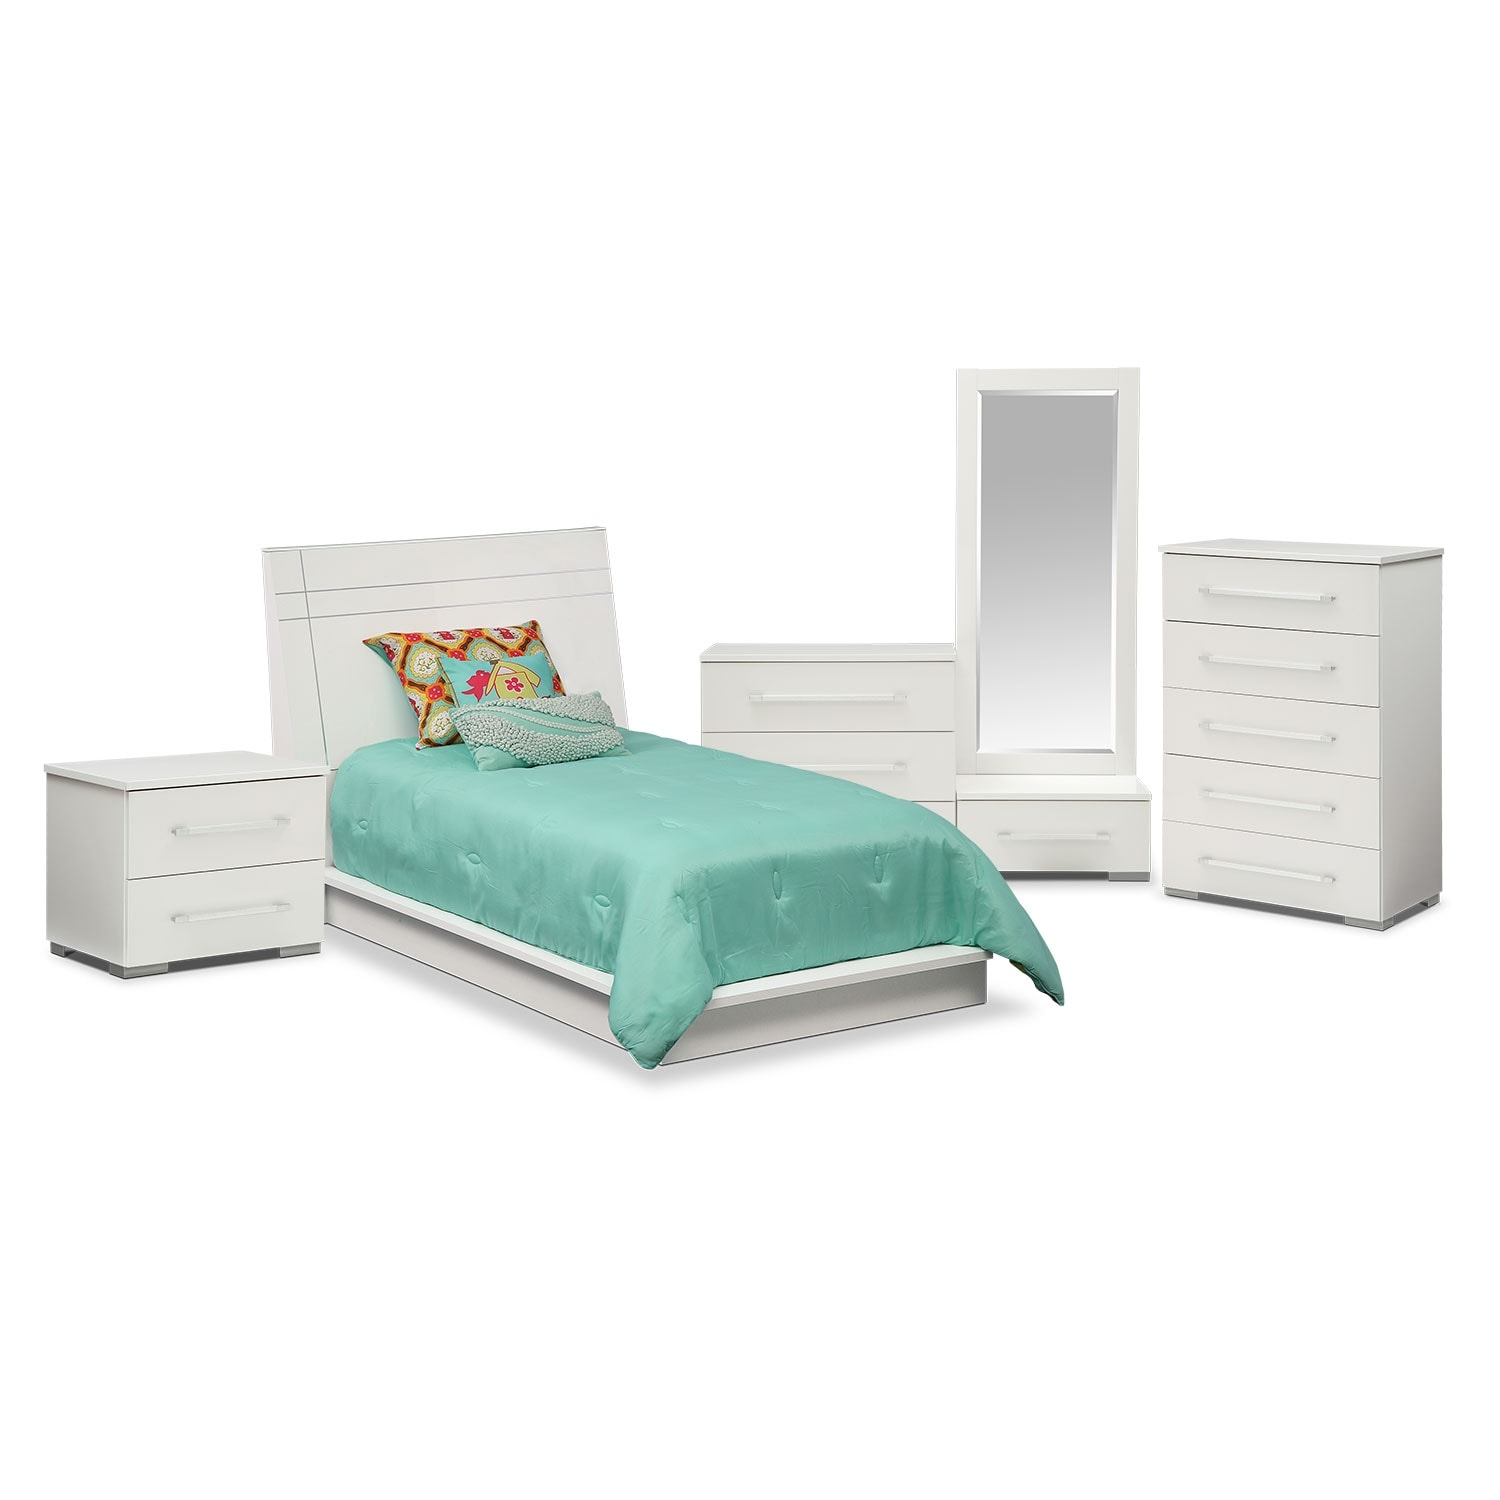 Dimora 7-Piece Twin Panel Bedroom Set - White